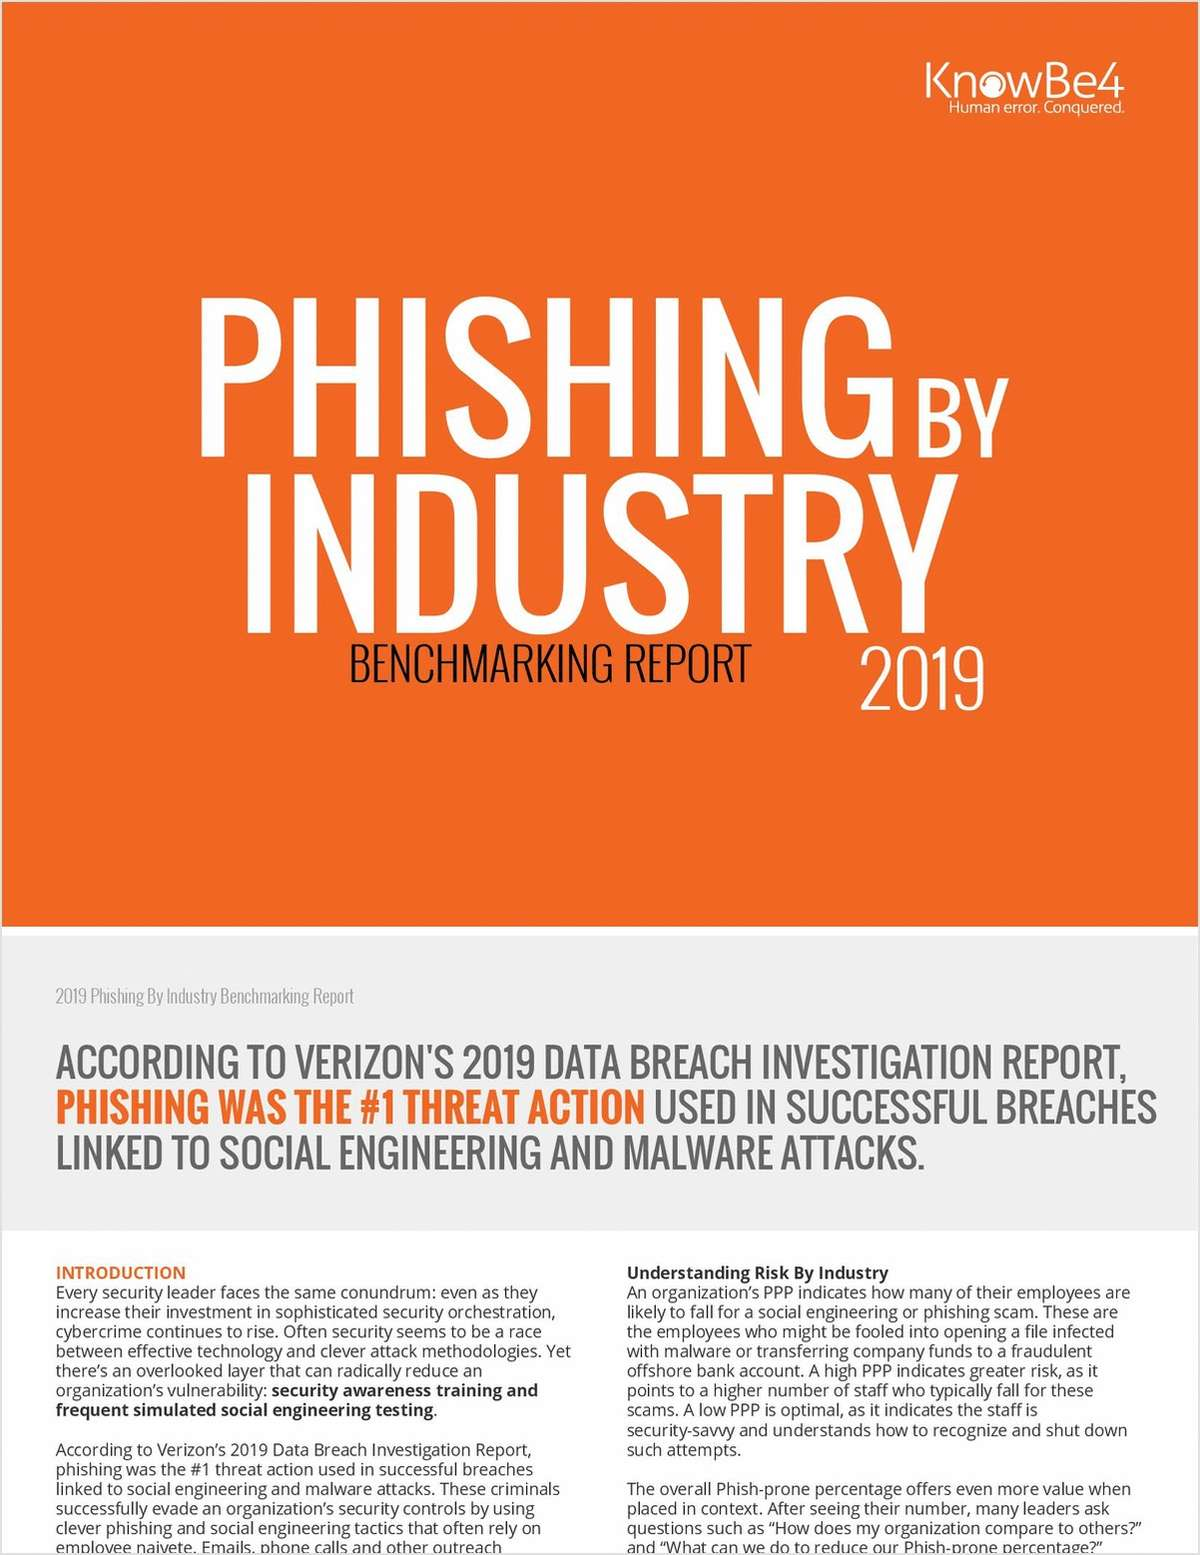 The 2019 Phishing Industry Benchmarking Report